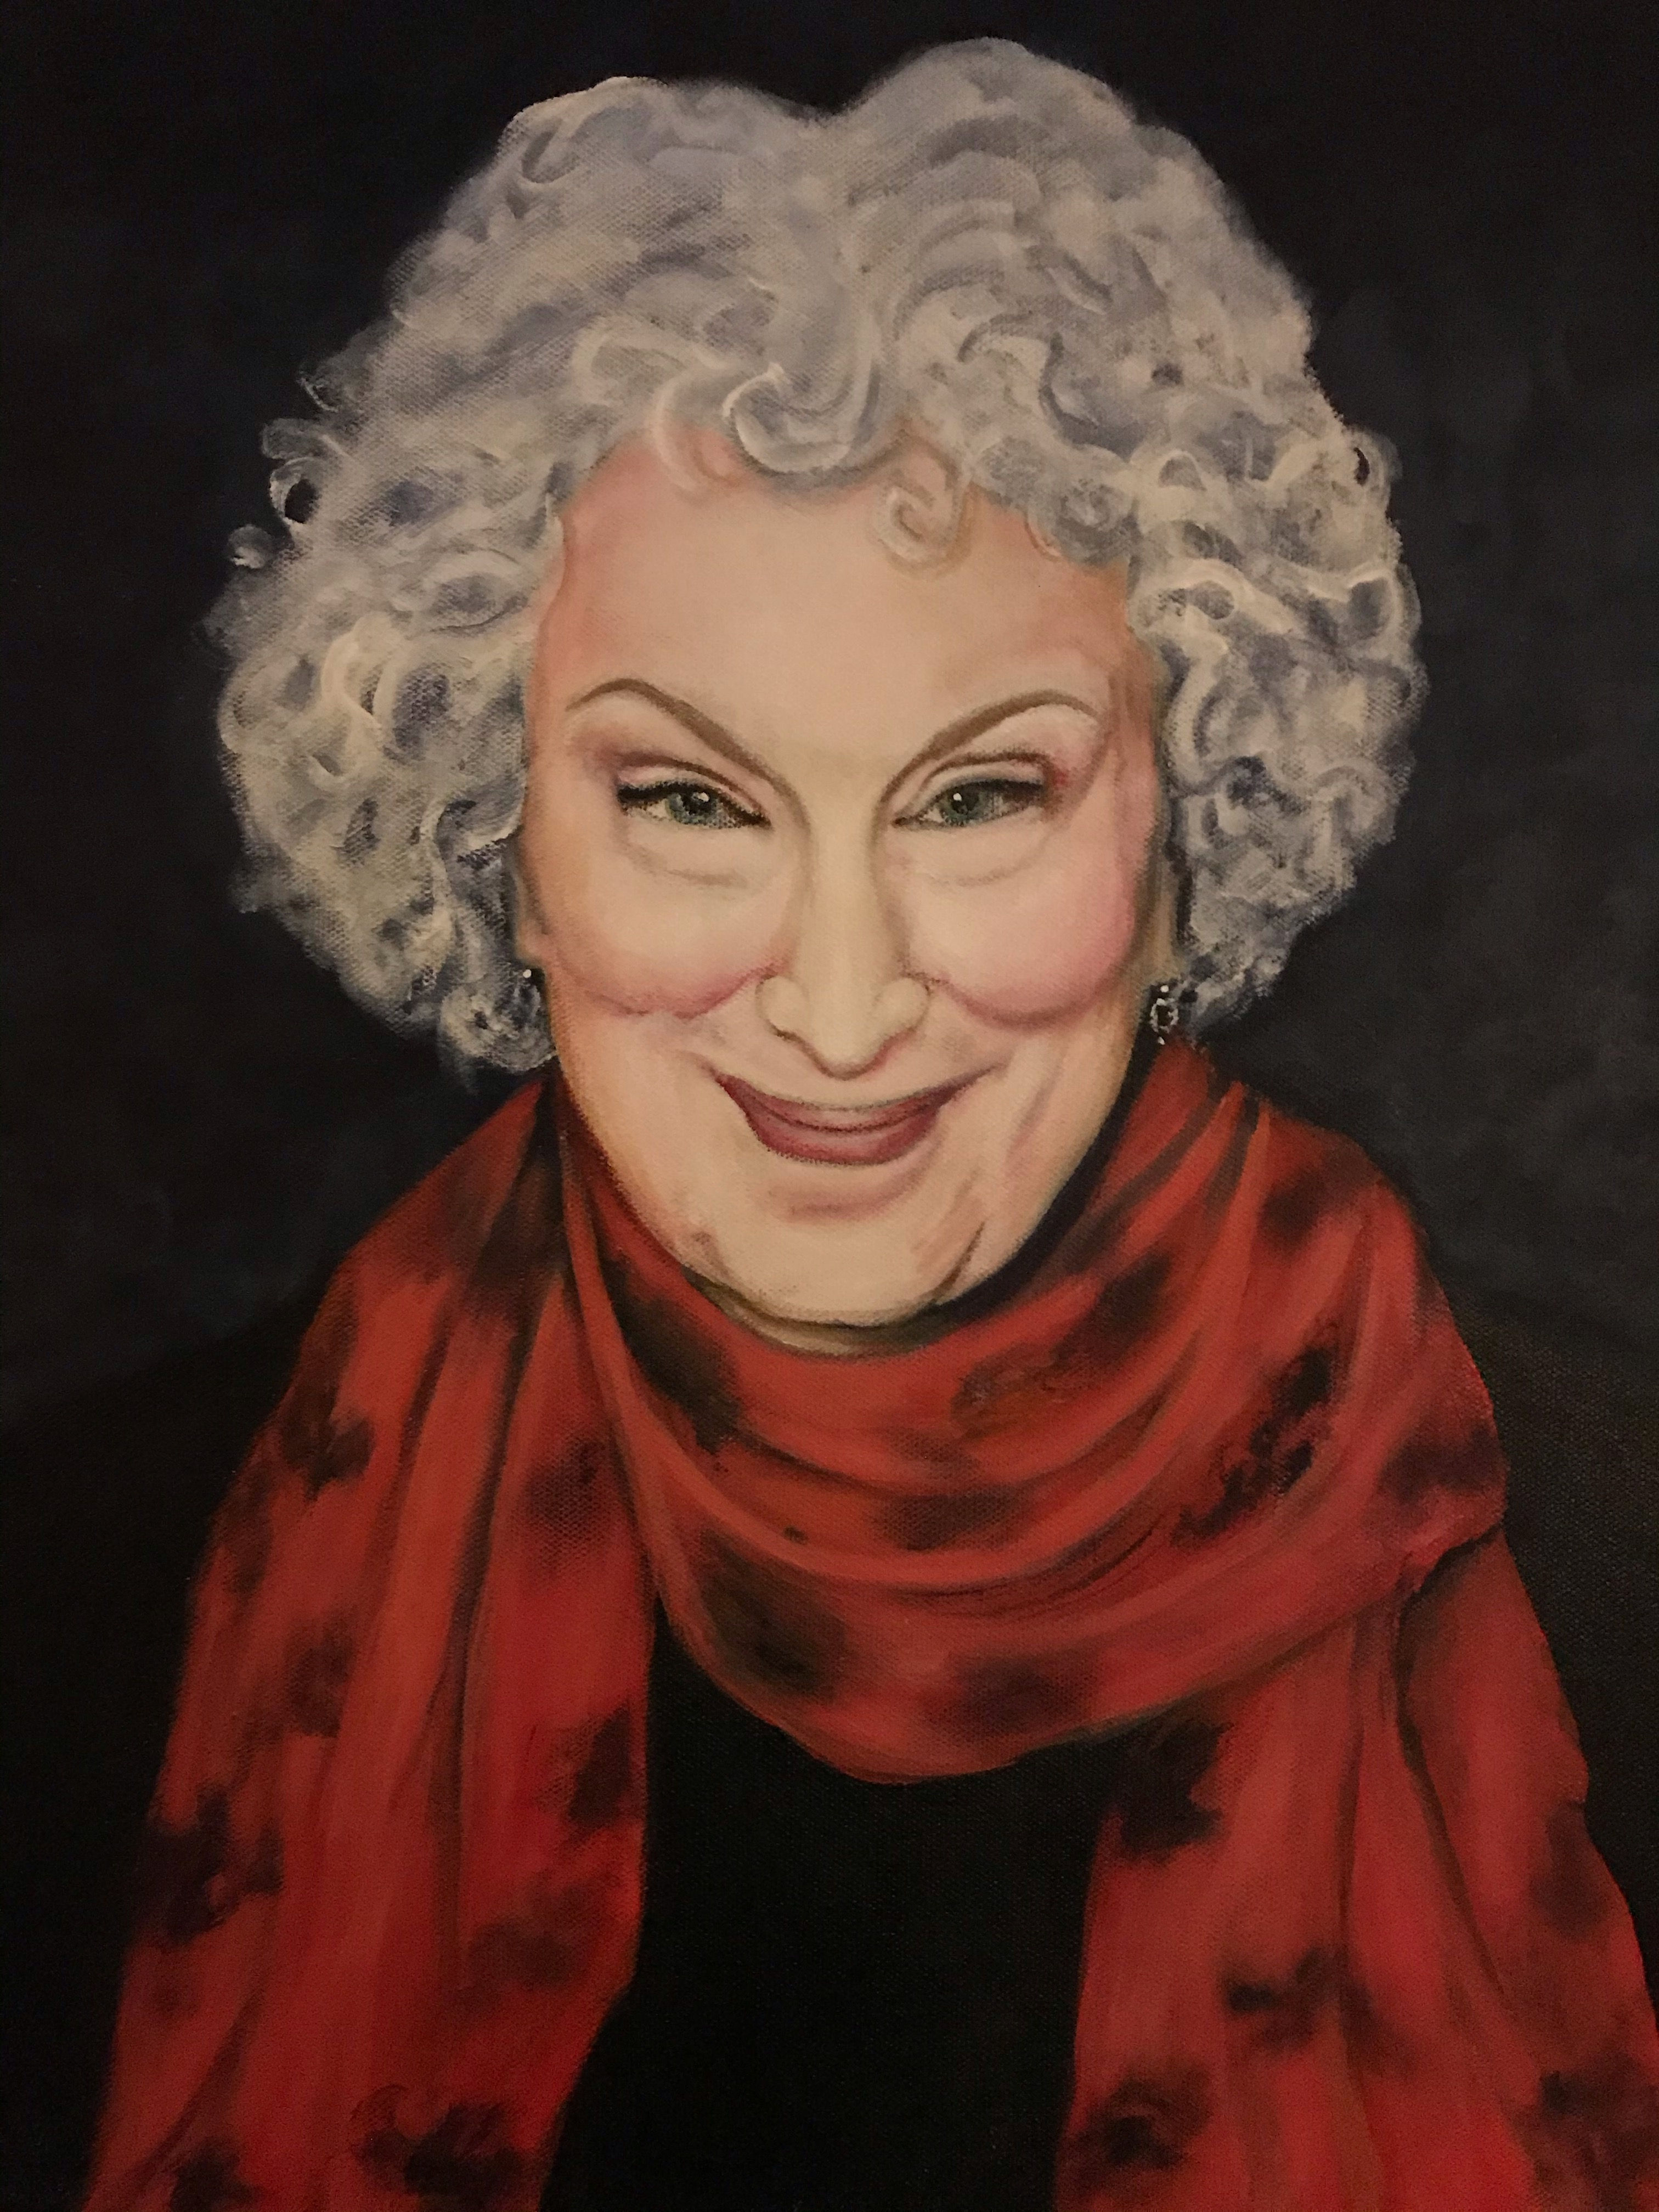 Author Margaret Atwood painting by Ken Tobias, acrylic.